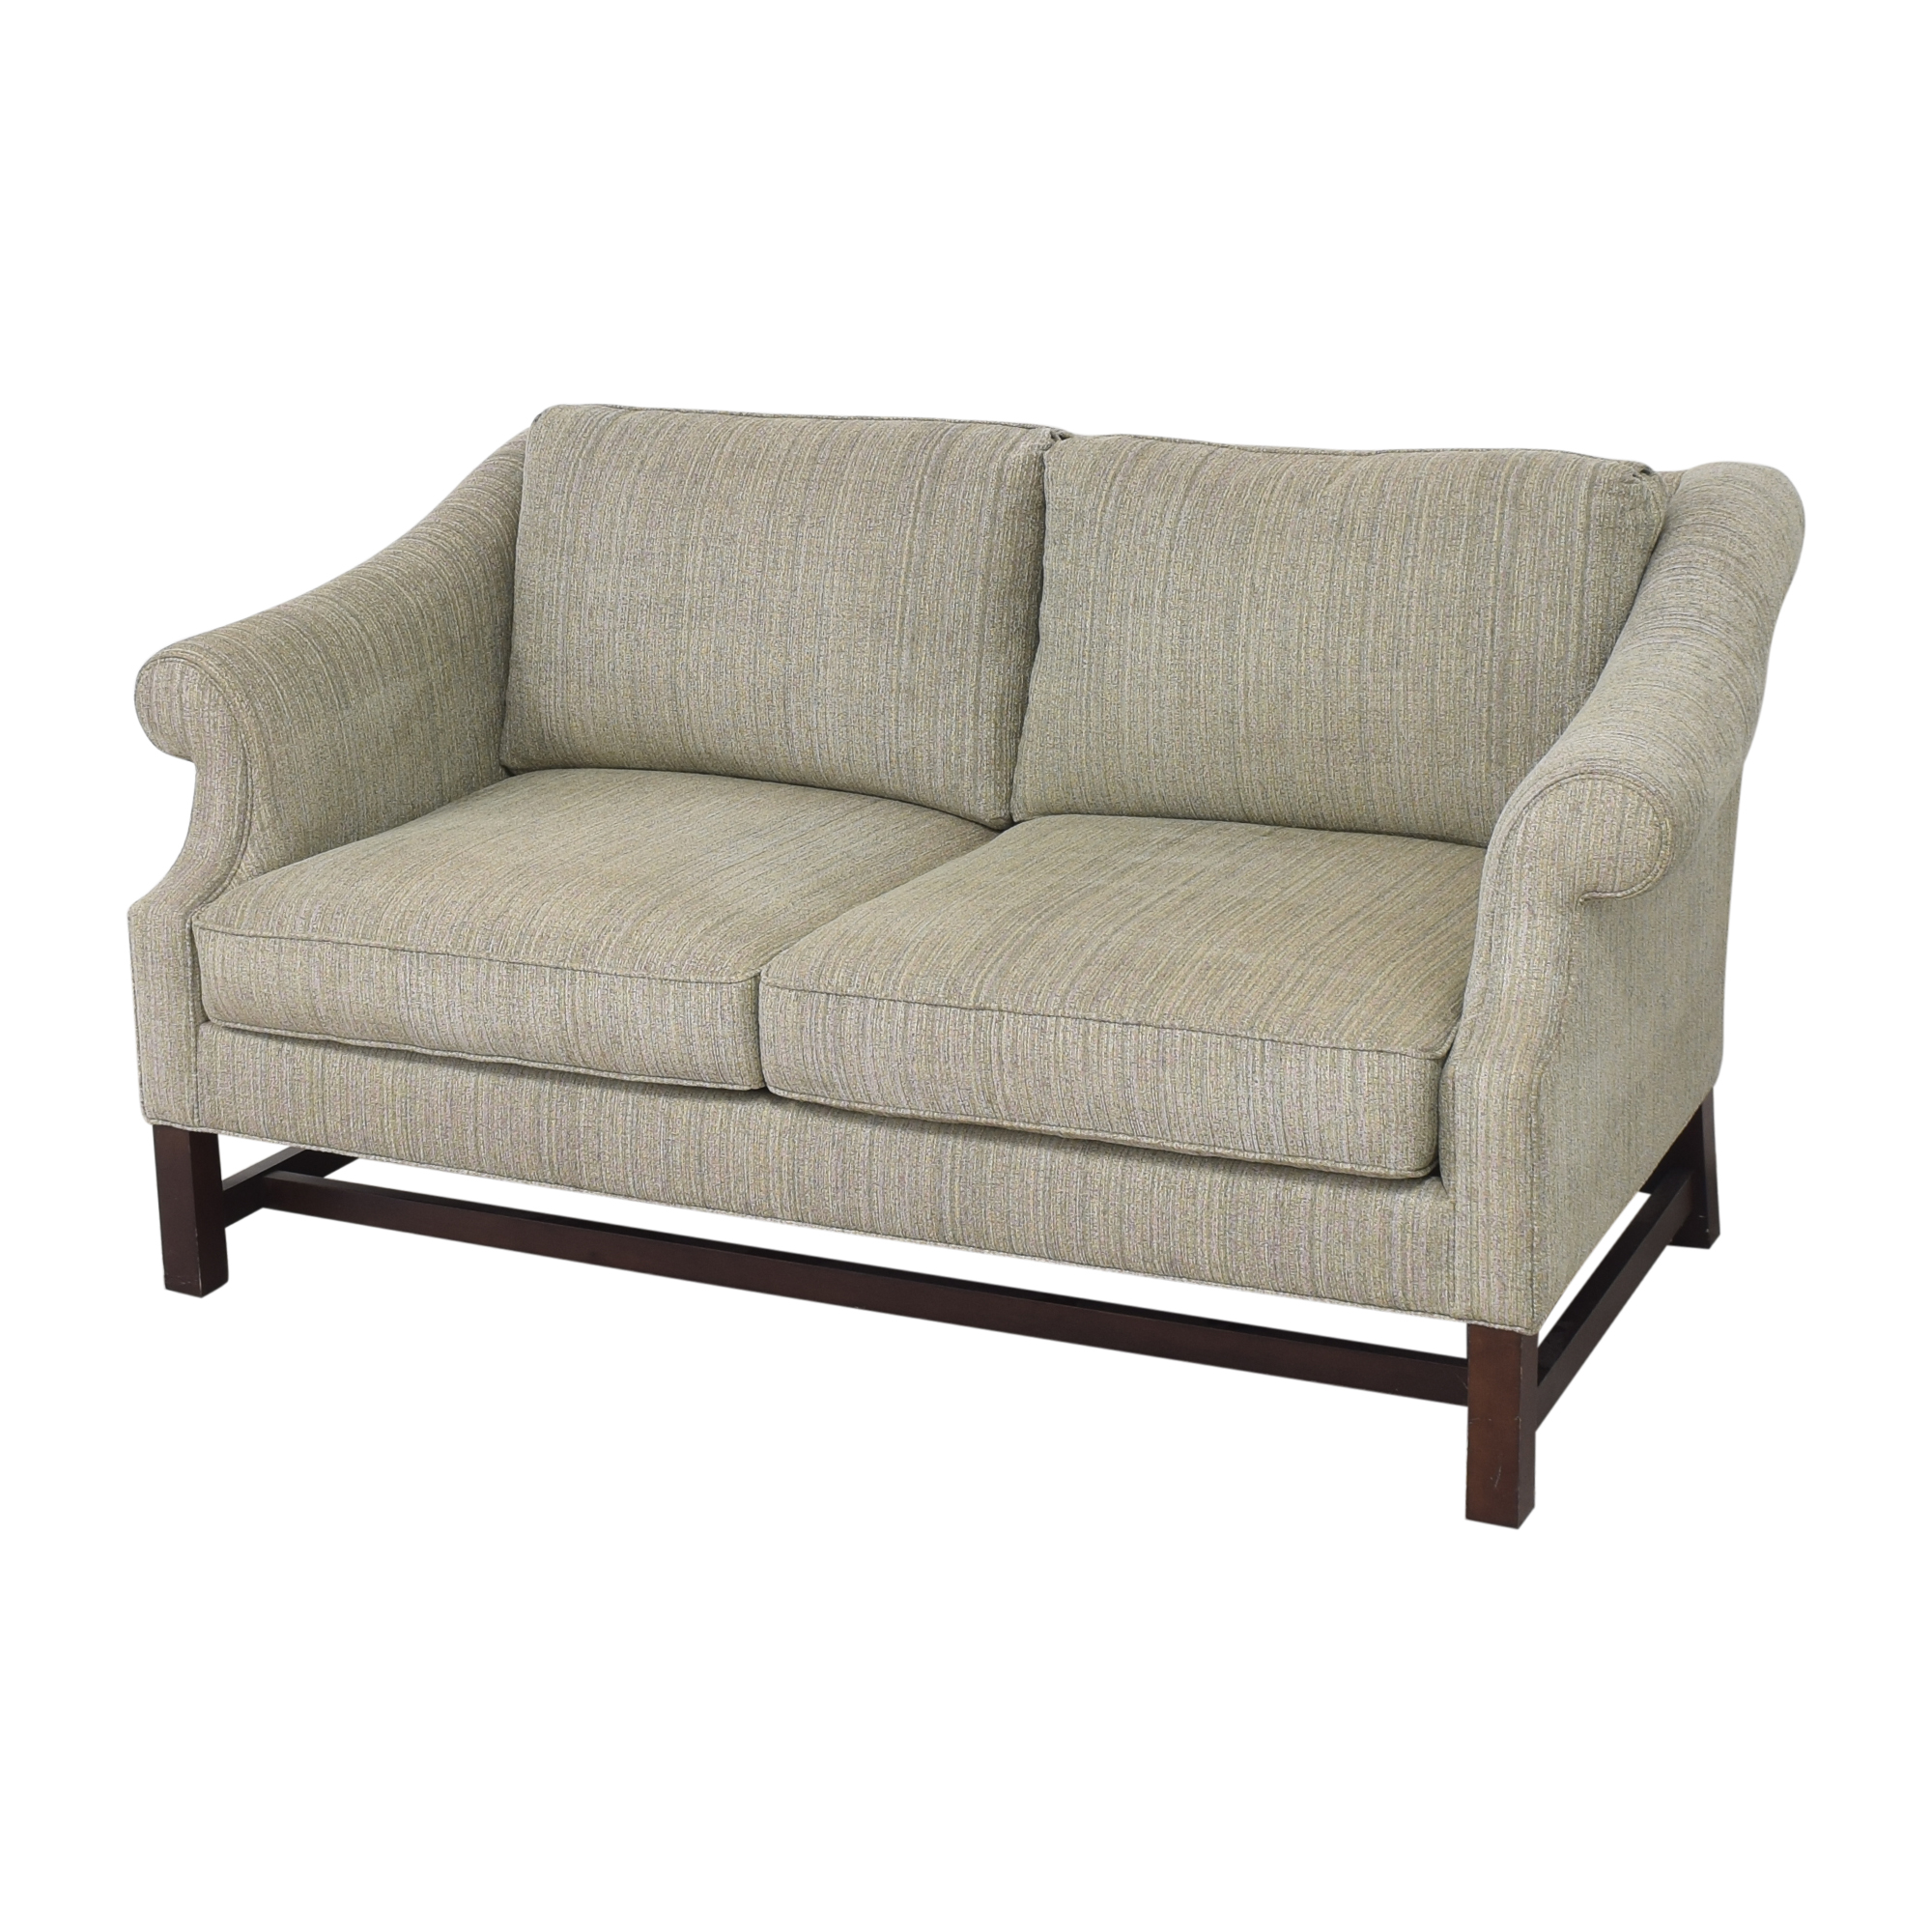 Bernhardt Bernhardt Martha Stewart Signature Collection Sofa nj